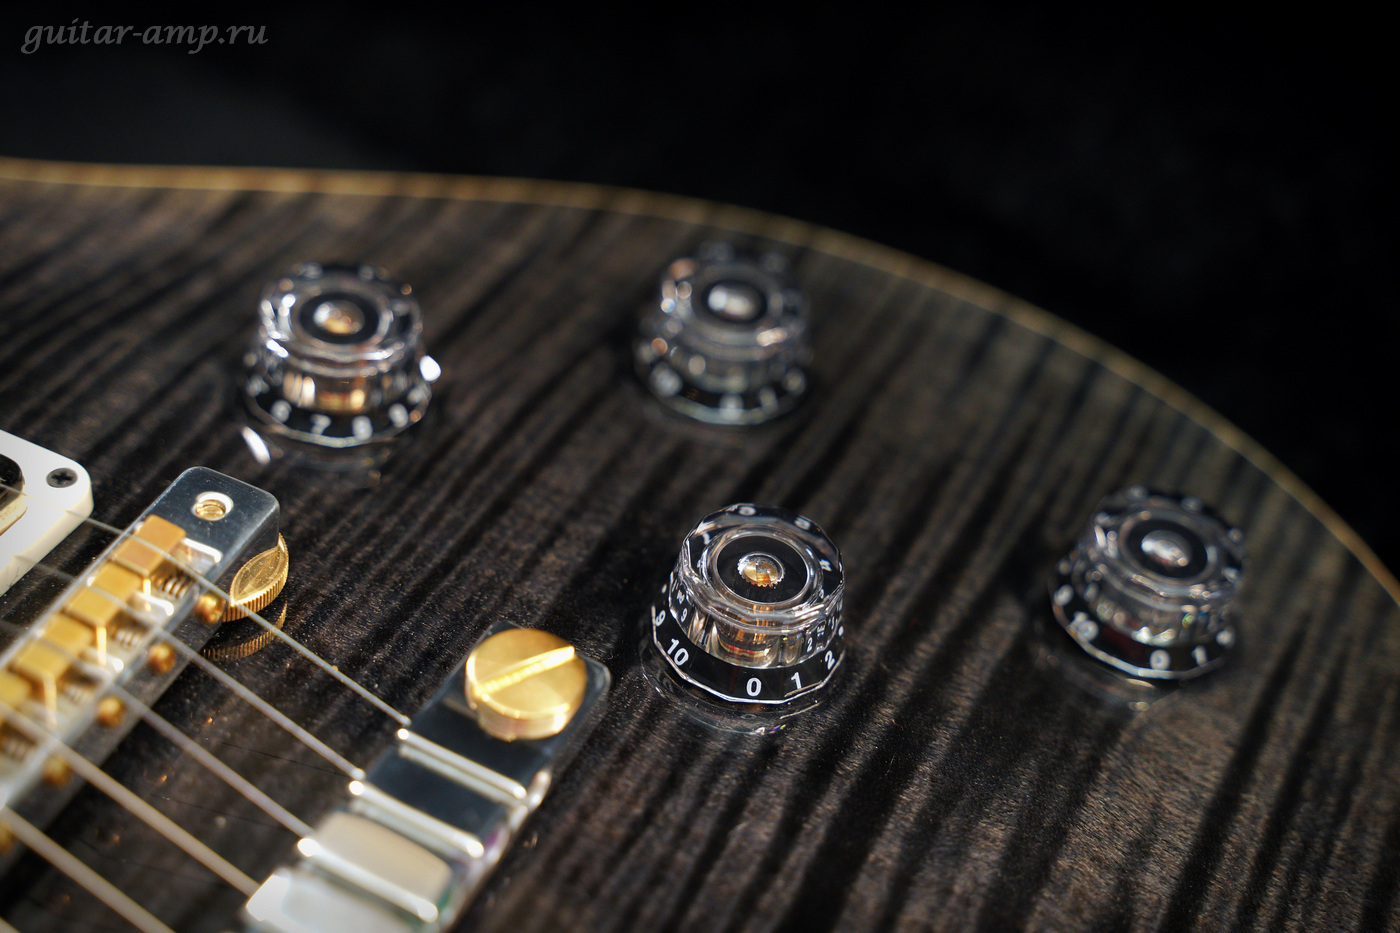 PRS SC245 Charcoal Grey Black 10 Top 2015 08_garx1400.jpg